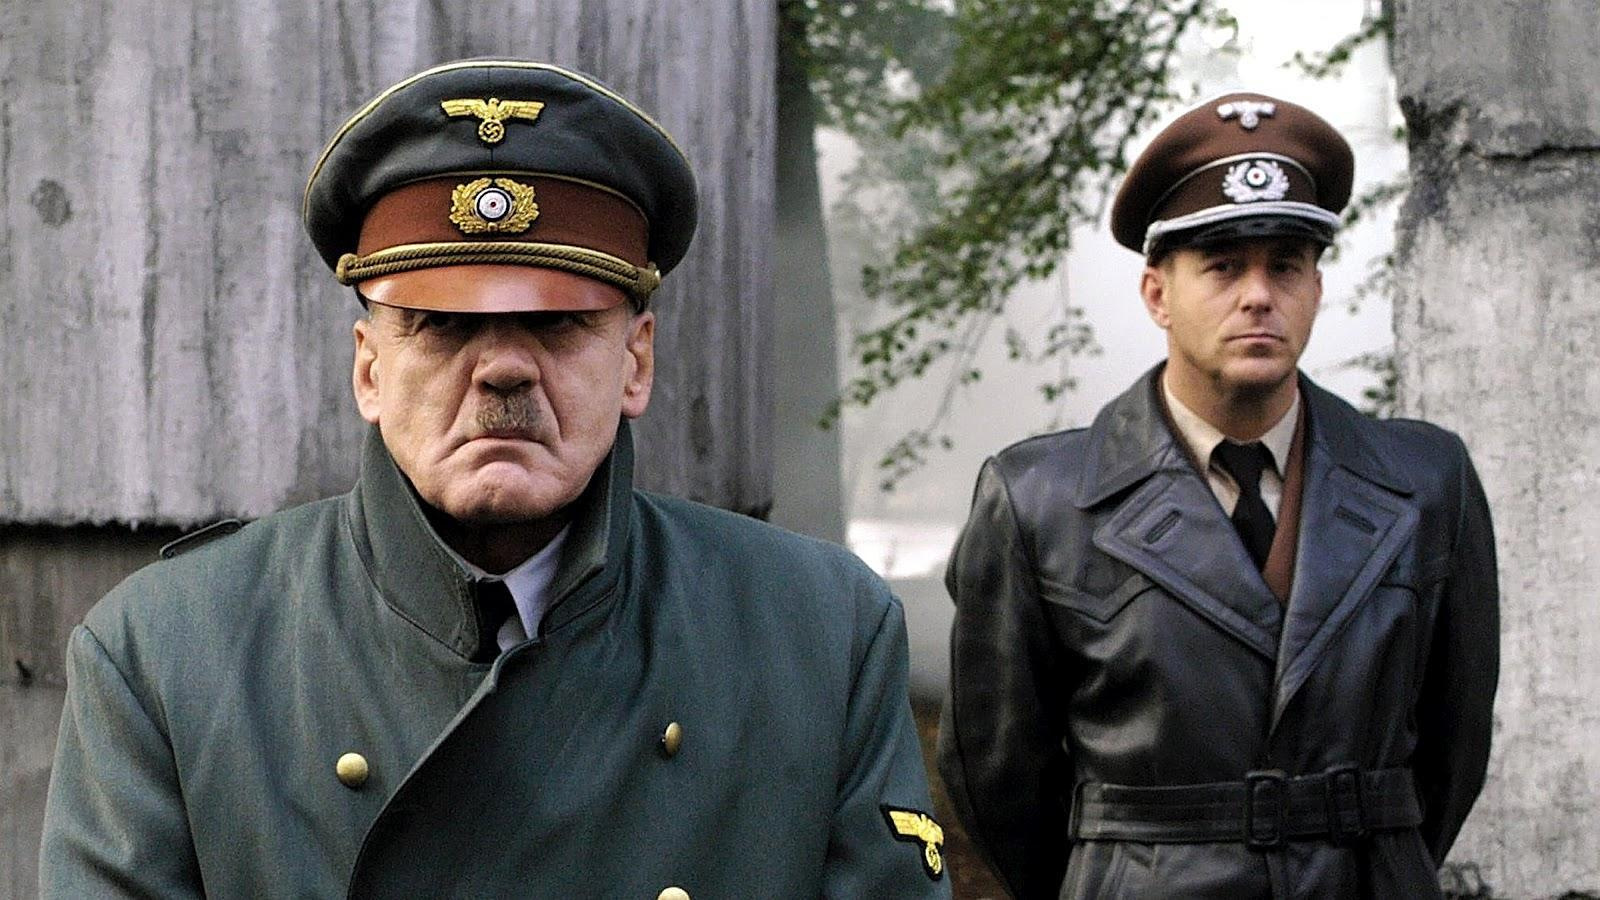 an analysis of the downfall of hitler a german dictator from world war two The 8 worst mistakes made by the axis during world war ii  he wanted to prove to hitler and the world that italy was the real deal  when preparing for the war, hitler failed to recognize.